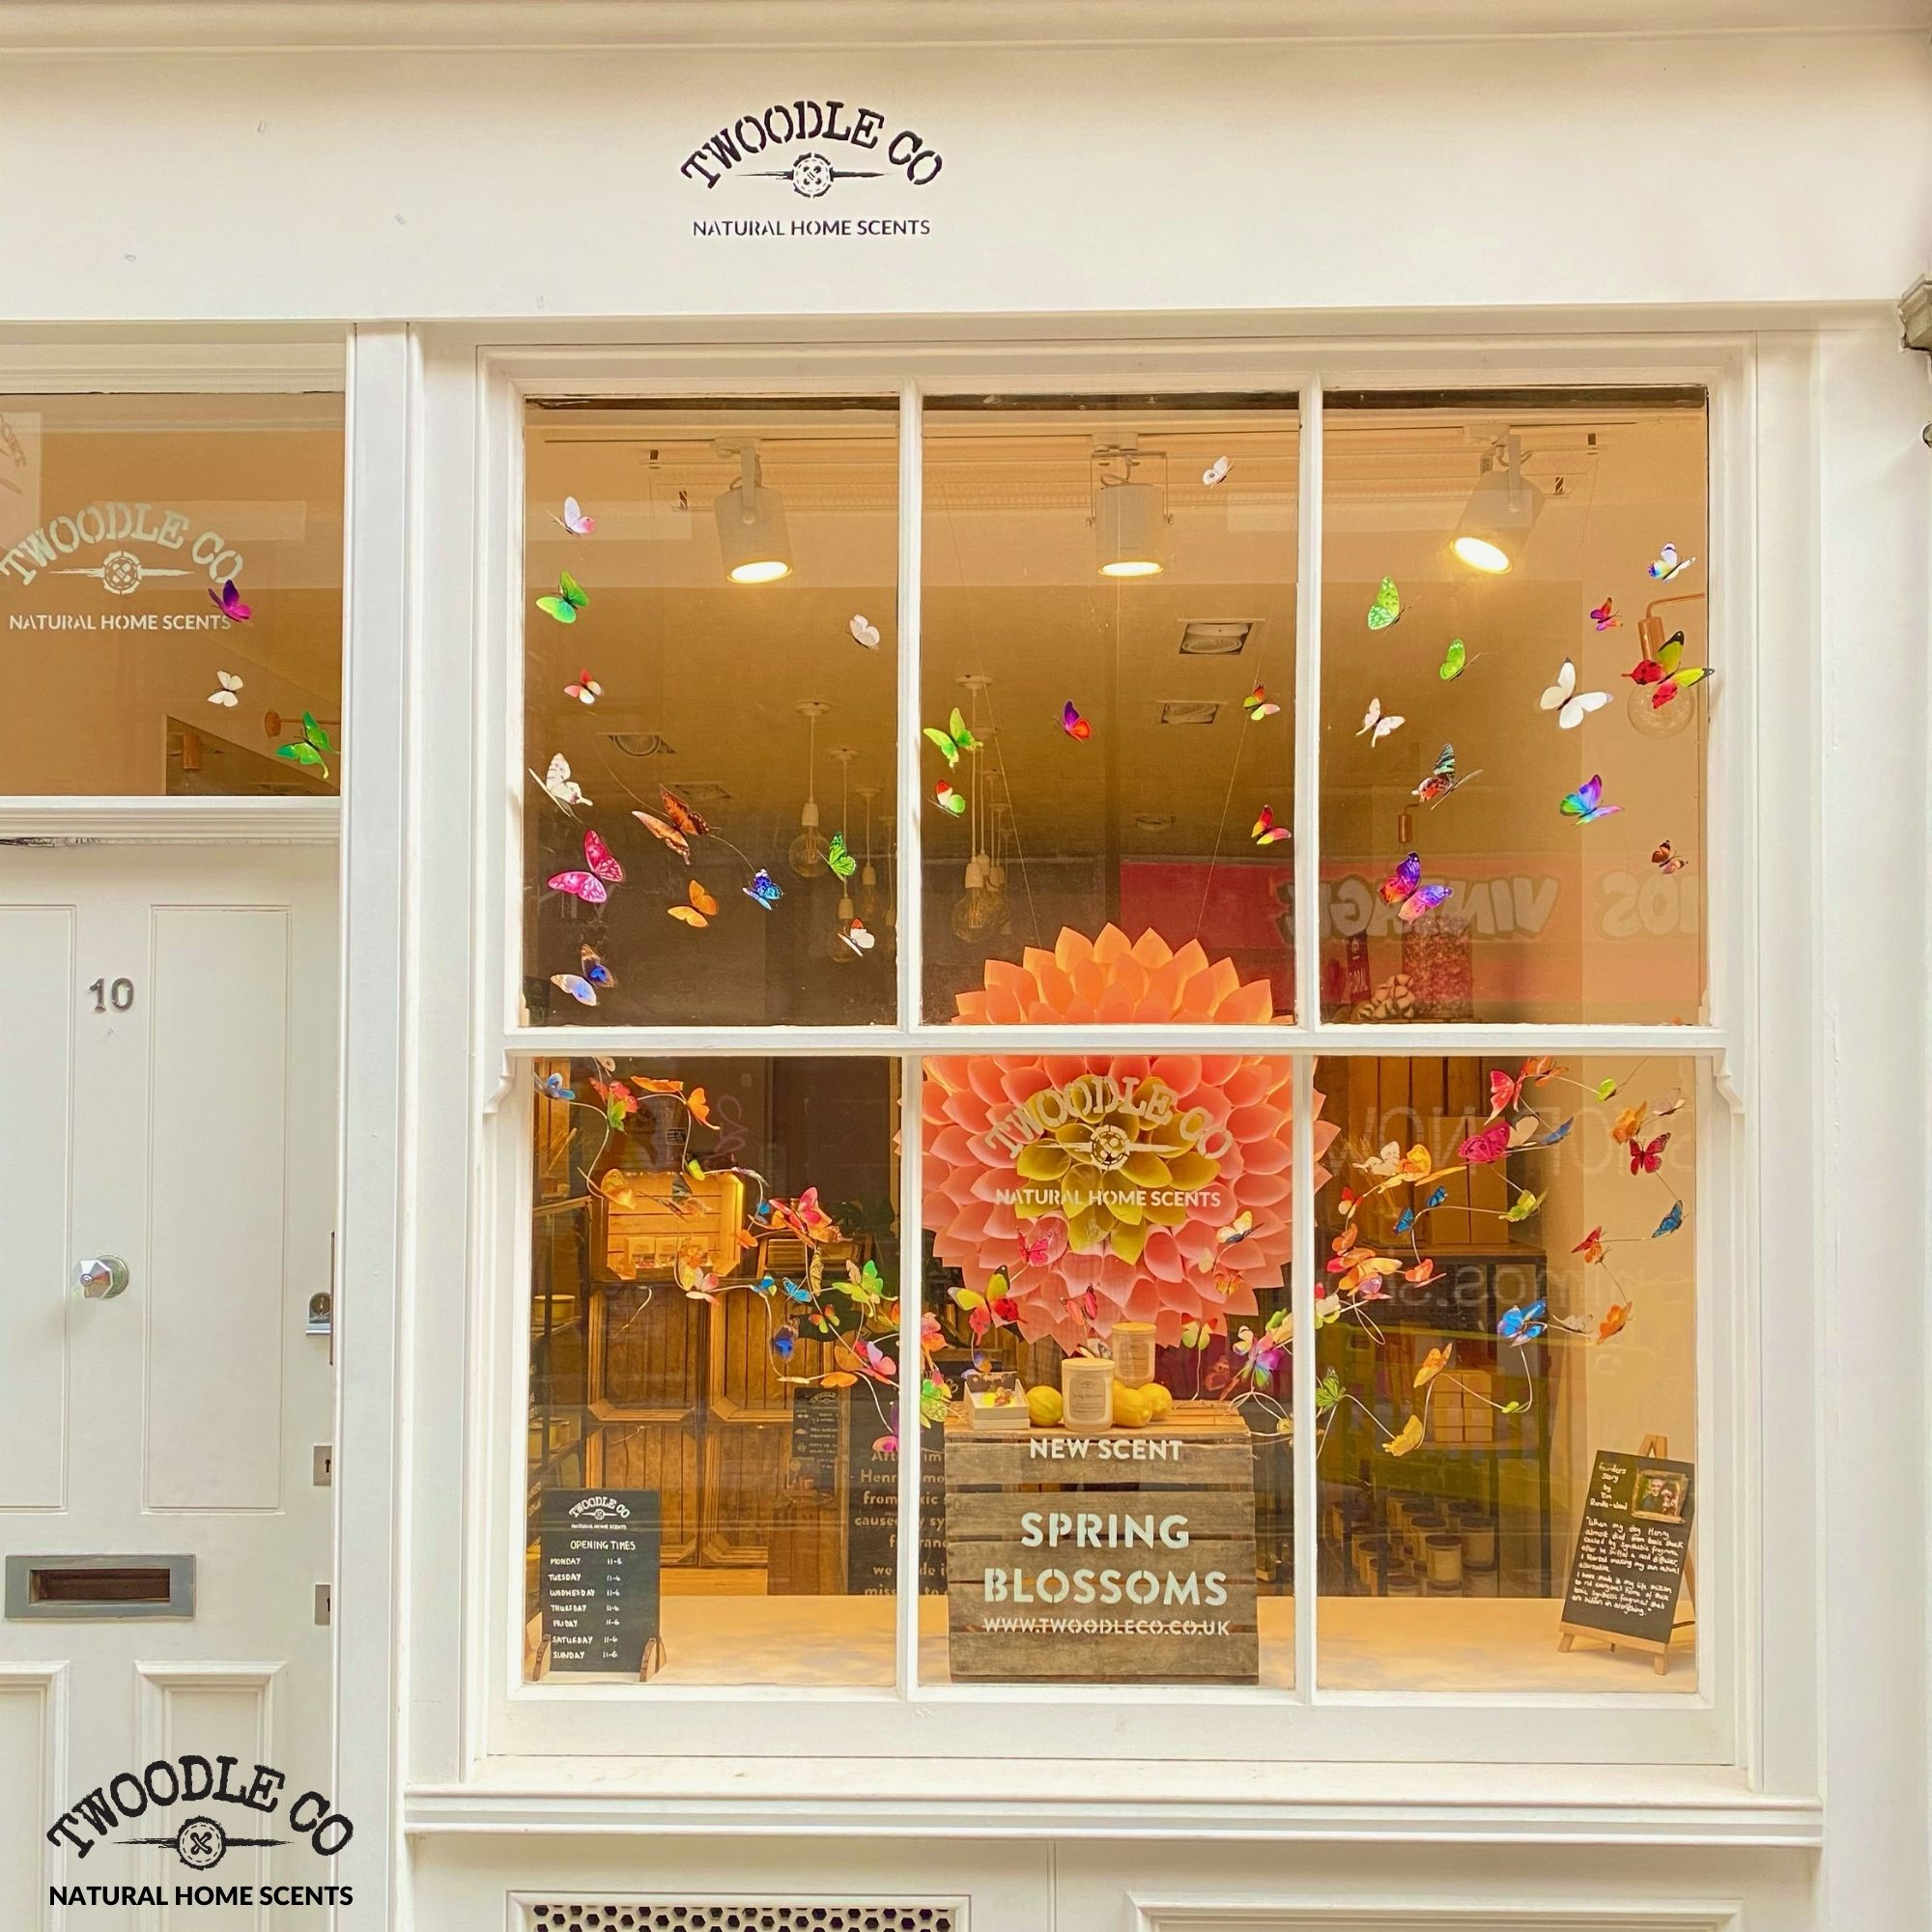 Store Re-opening 12th April 2021 - Twoodle Co Natural Home Scents